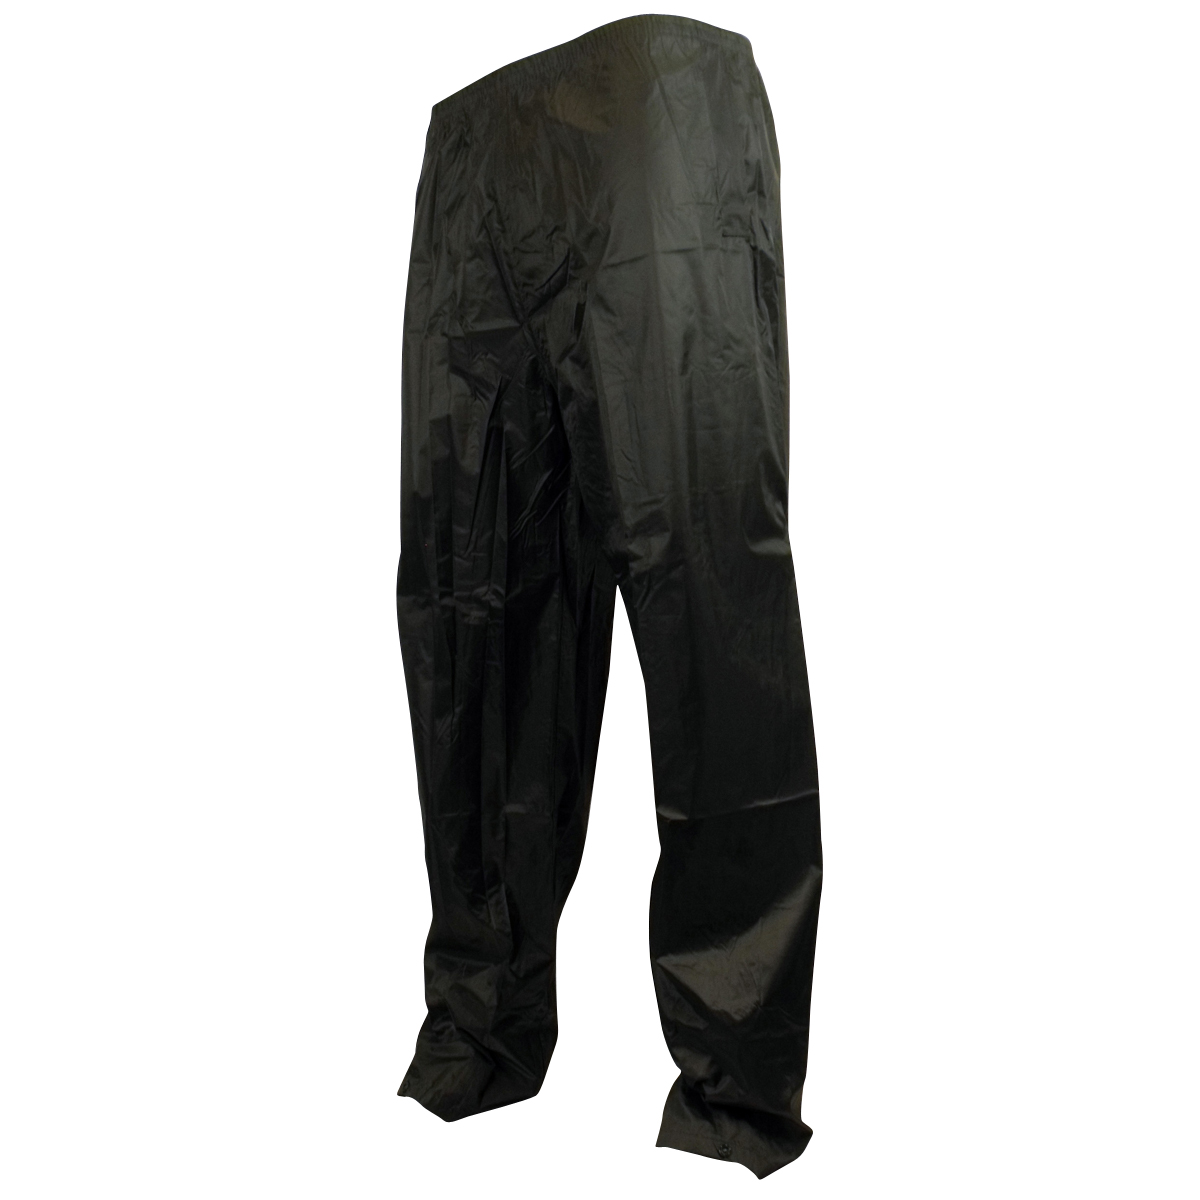 The Best Hiking Pants for Men. By Andy Wellman ⋅ Senior Review Editor. Saturday May 12, The OR Ferrosi were the lightest, thinnest, and by far the most breathable pants in this test, making them a primo choice for wearing in hot climates. On the other hand, the REI Co-op Screeline was the clear winner in the venting department.